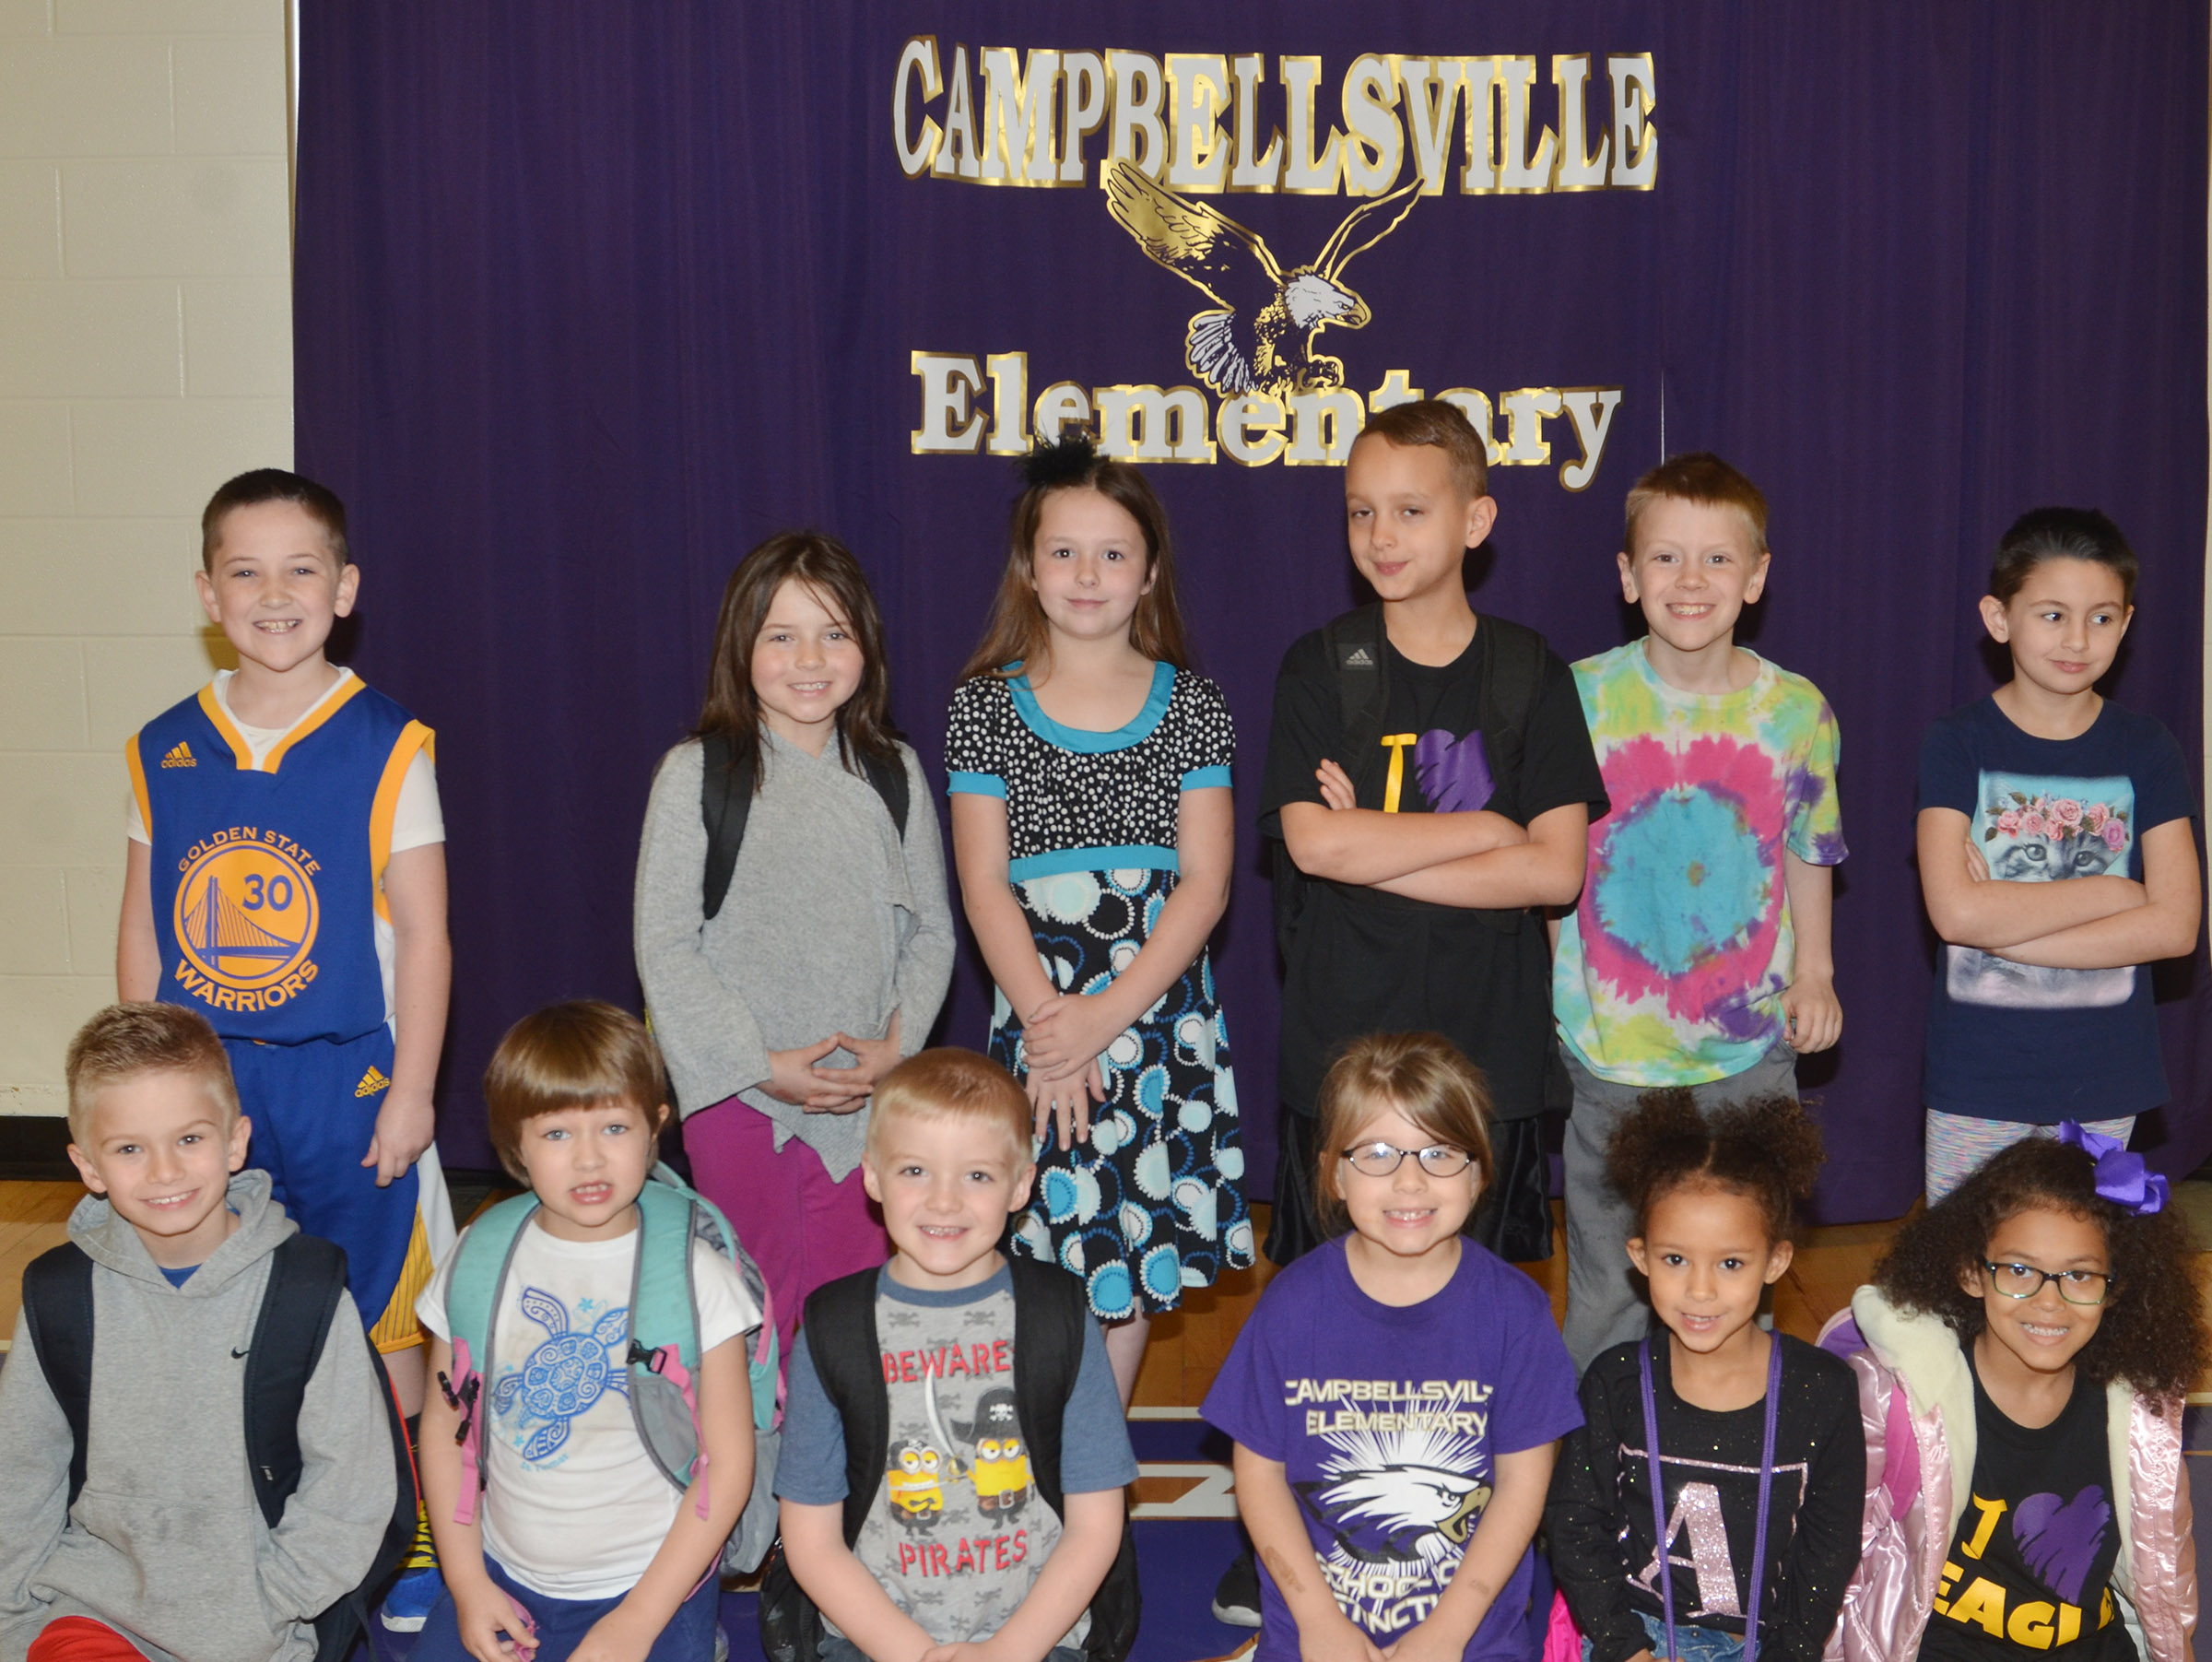 CES art competition classroom second-place winners include, from left, front, first-graders Parker Hamilton and Addelyn Dooley, first-grader Parker Scharbrough, first-grader Kenady Gabehart, kindergarteners Aleja Taylor and Marlee Dickens. Back, second-graders Luke Adkins, Kendall Cruz and Evelyn Stancill and third-graders Bradley Paris, Connor Coots and Raeanna Jefferson. Absent from the photo are kindergartener Jyra Welch and Kaylee Gayheart.